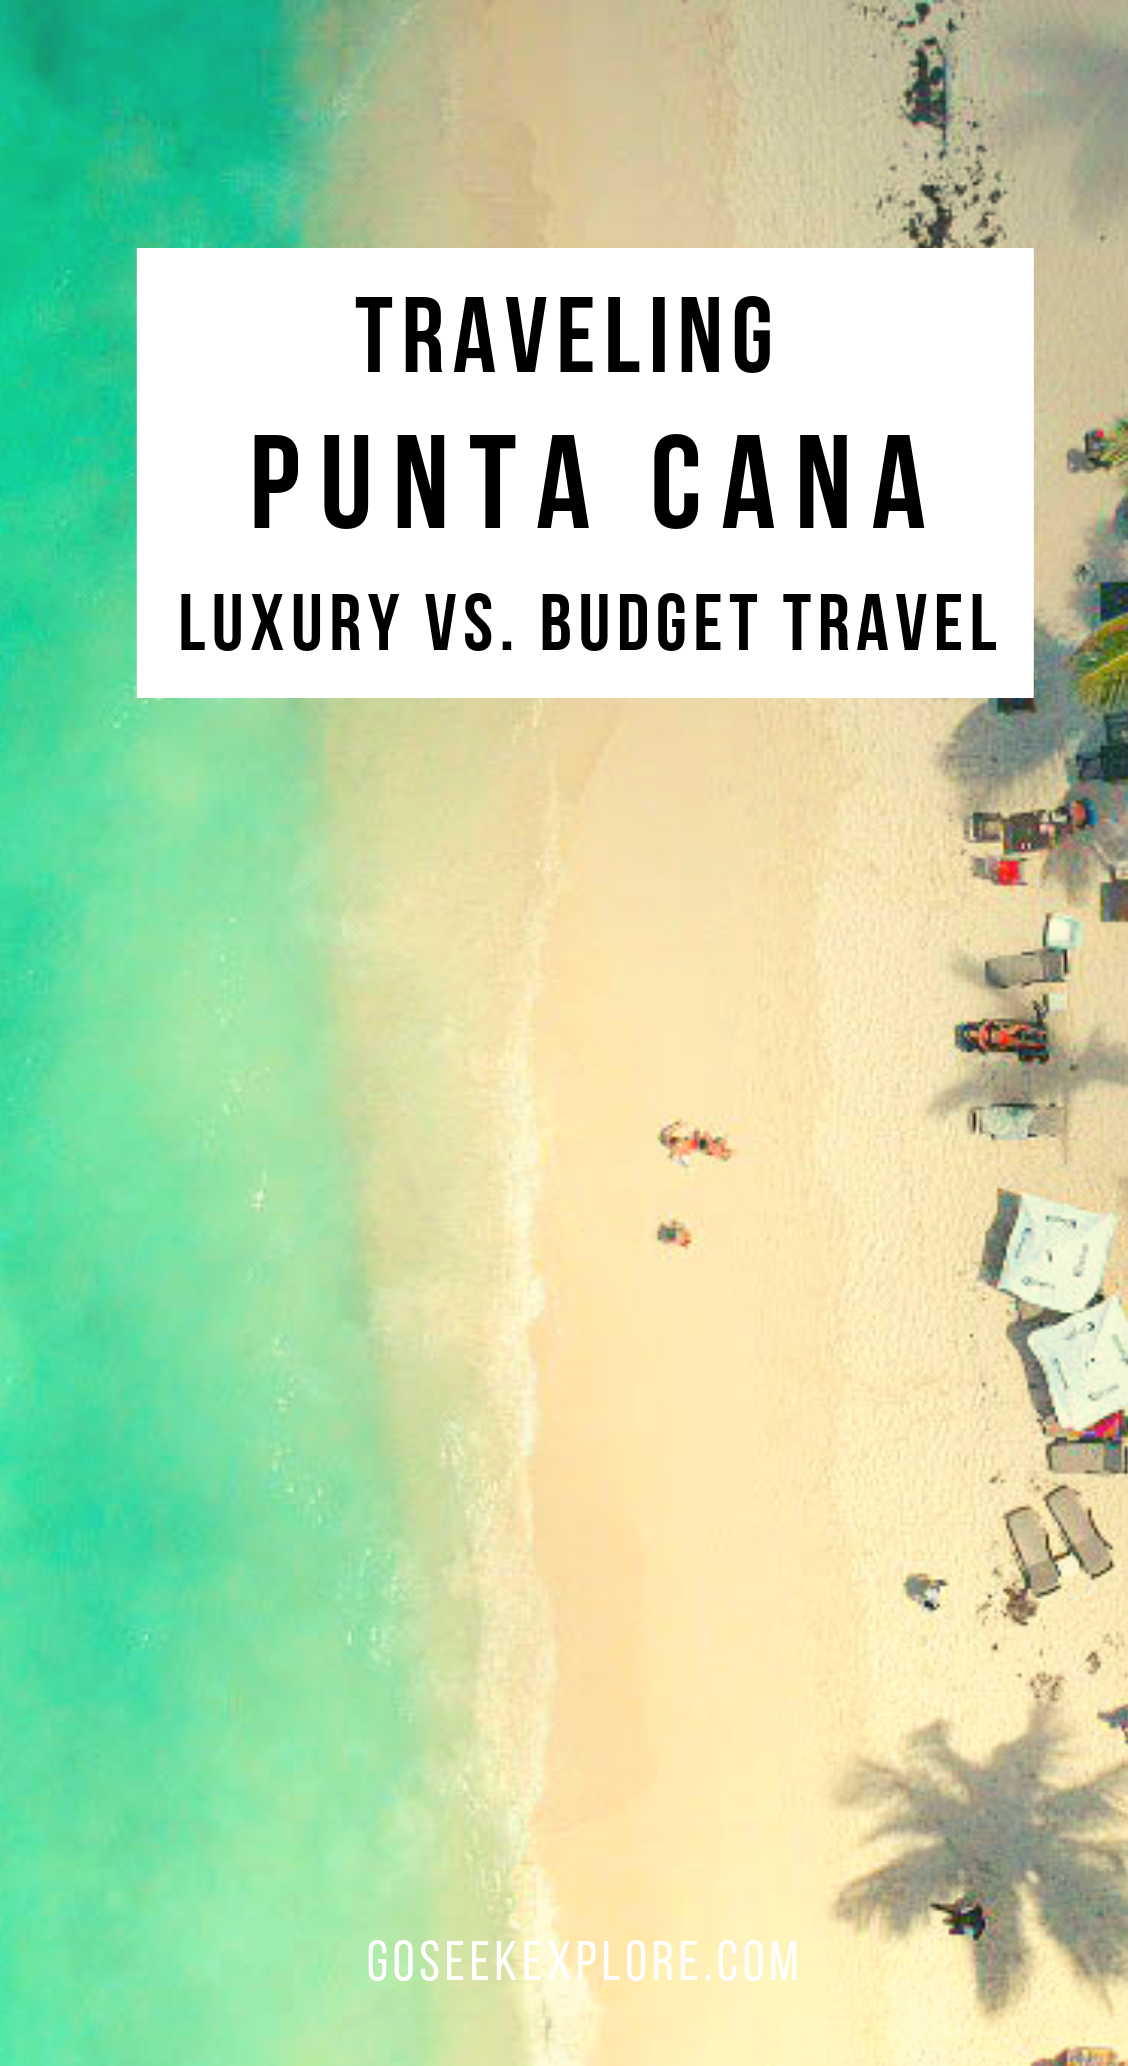 Punta Cana: Comparing Luxury Travel With Budget Travel - goseekexplore.com #puntacana #dominicanrepublic #caribbeantravel